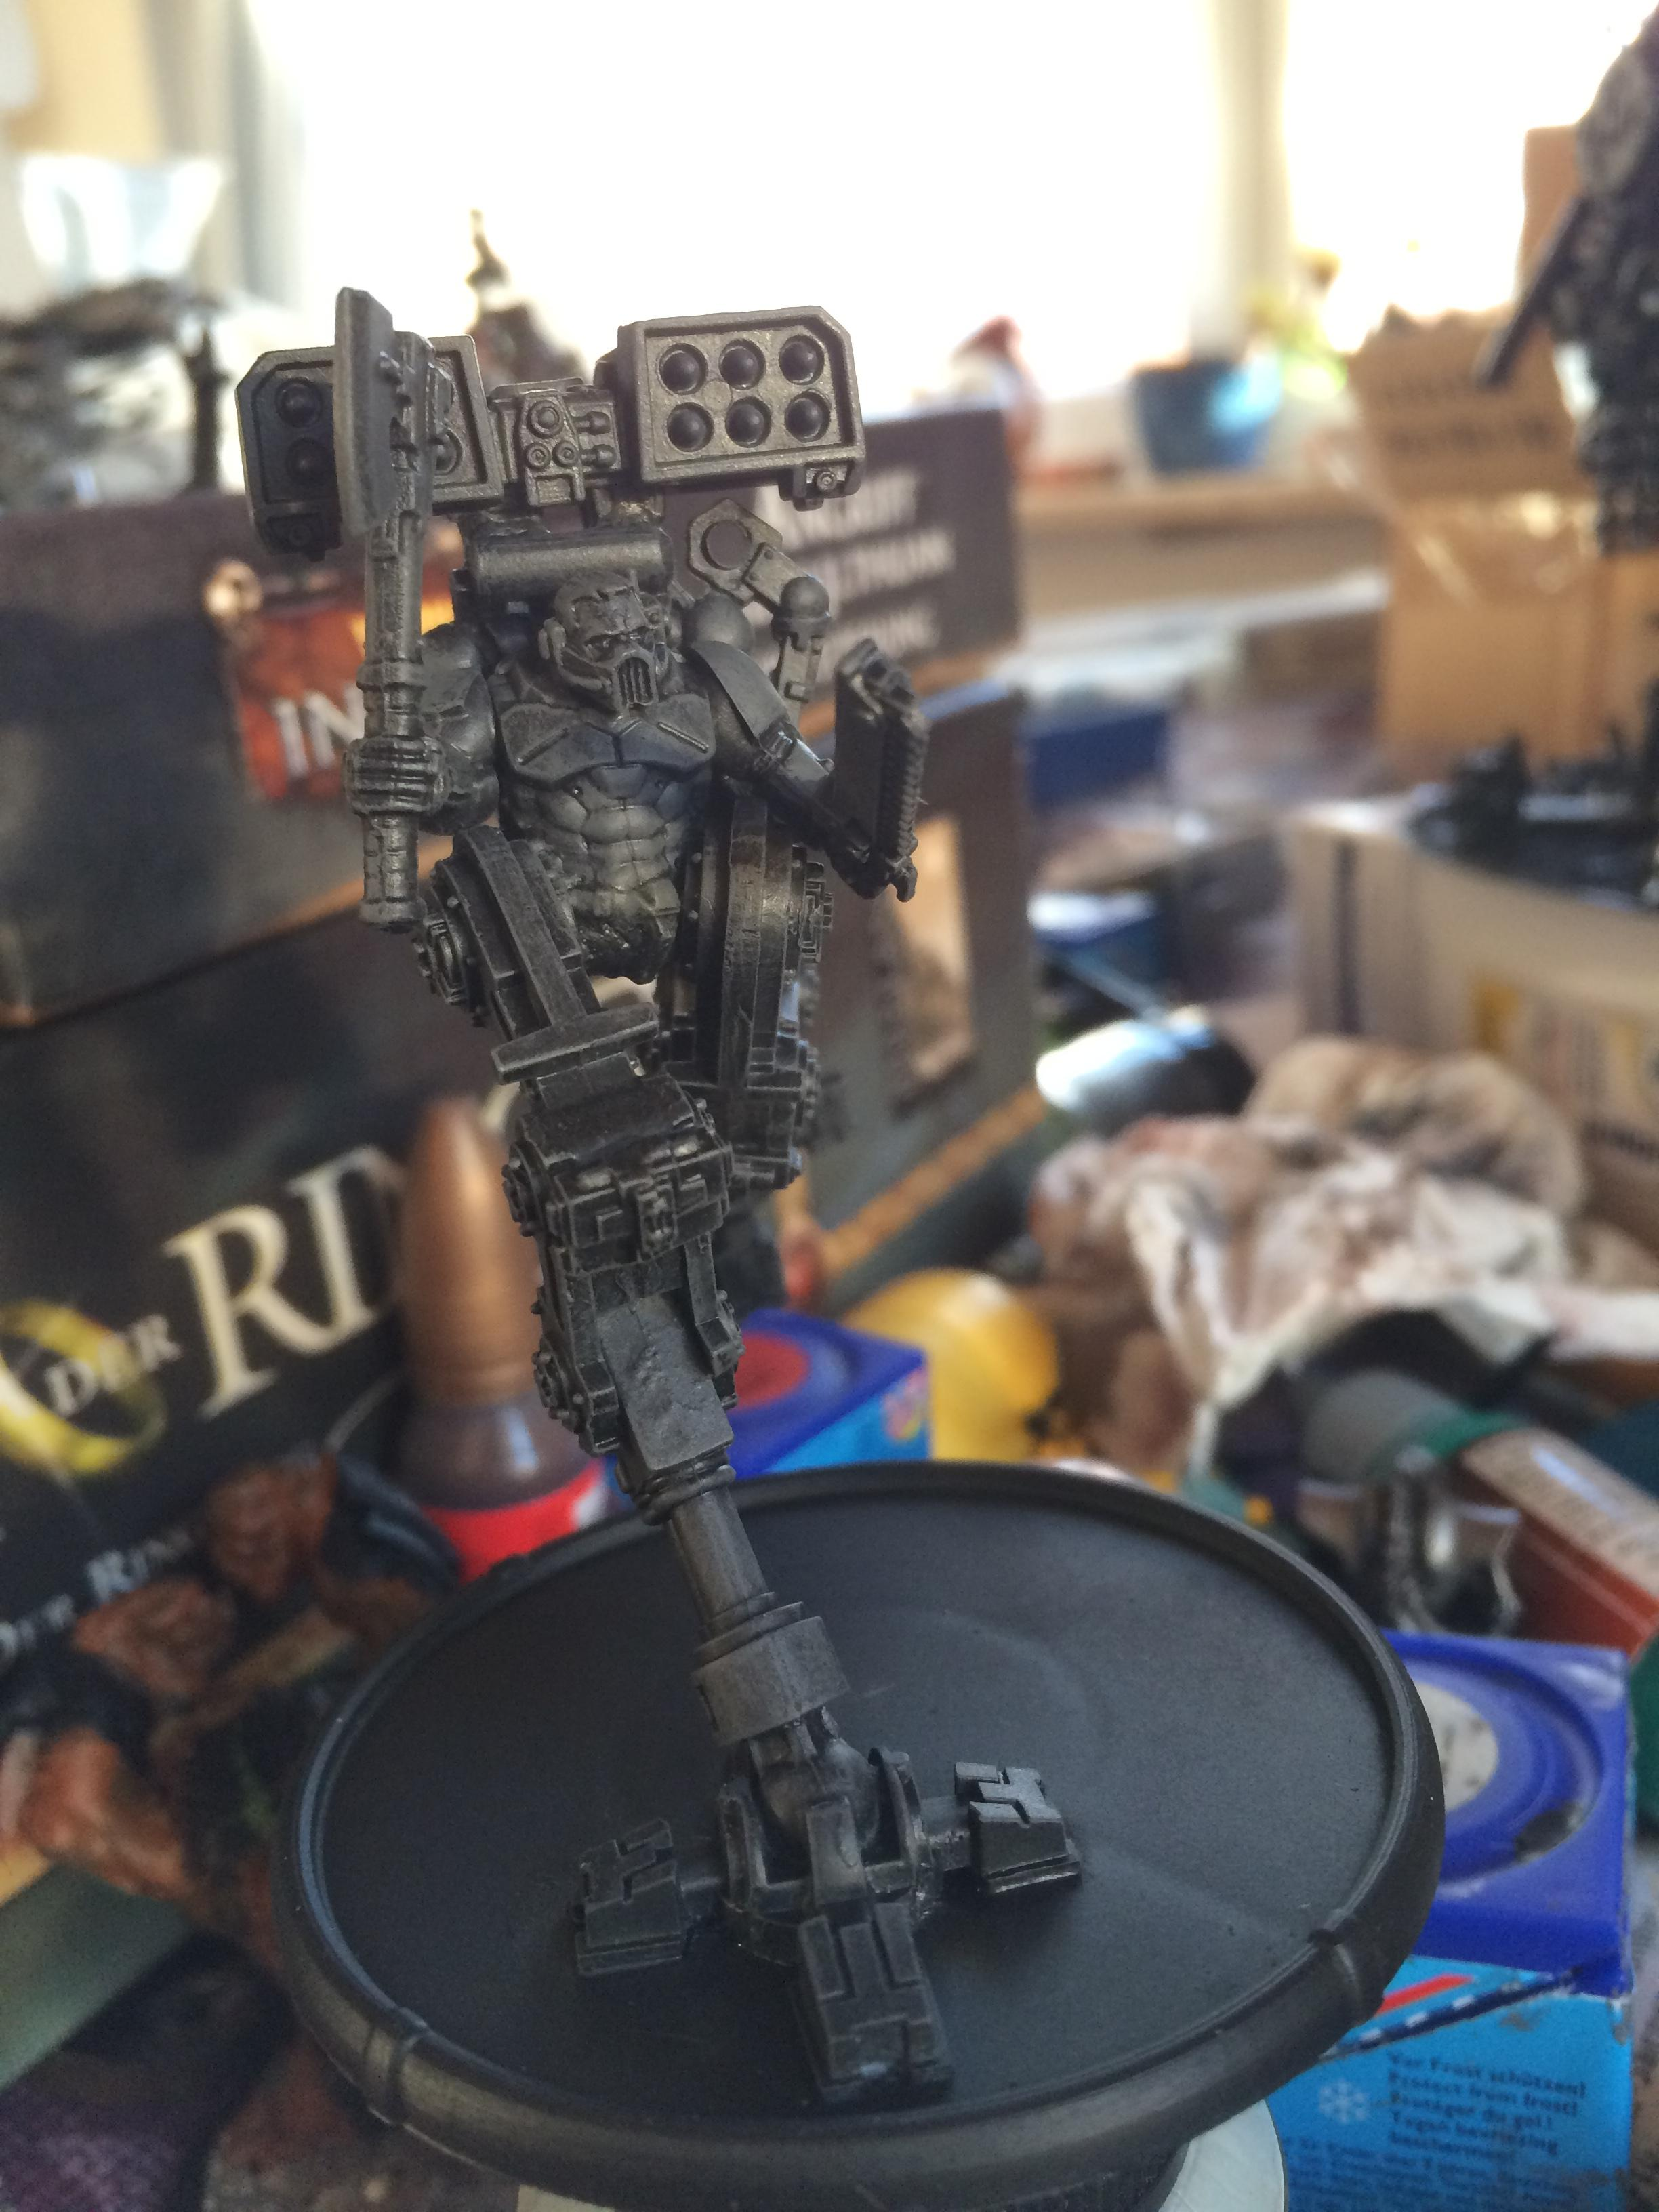 Conversion, Crazy, Dreadnought, Hands, Ih, Iron, Mad, Parts, Sarkophagus, Scratch, Space, Space Marines